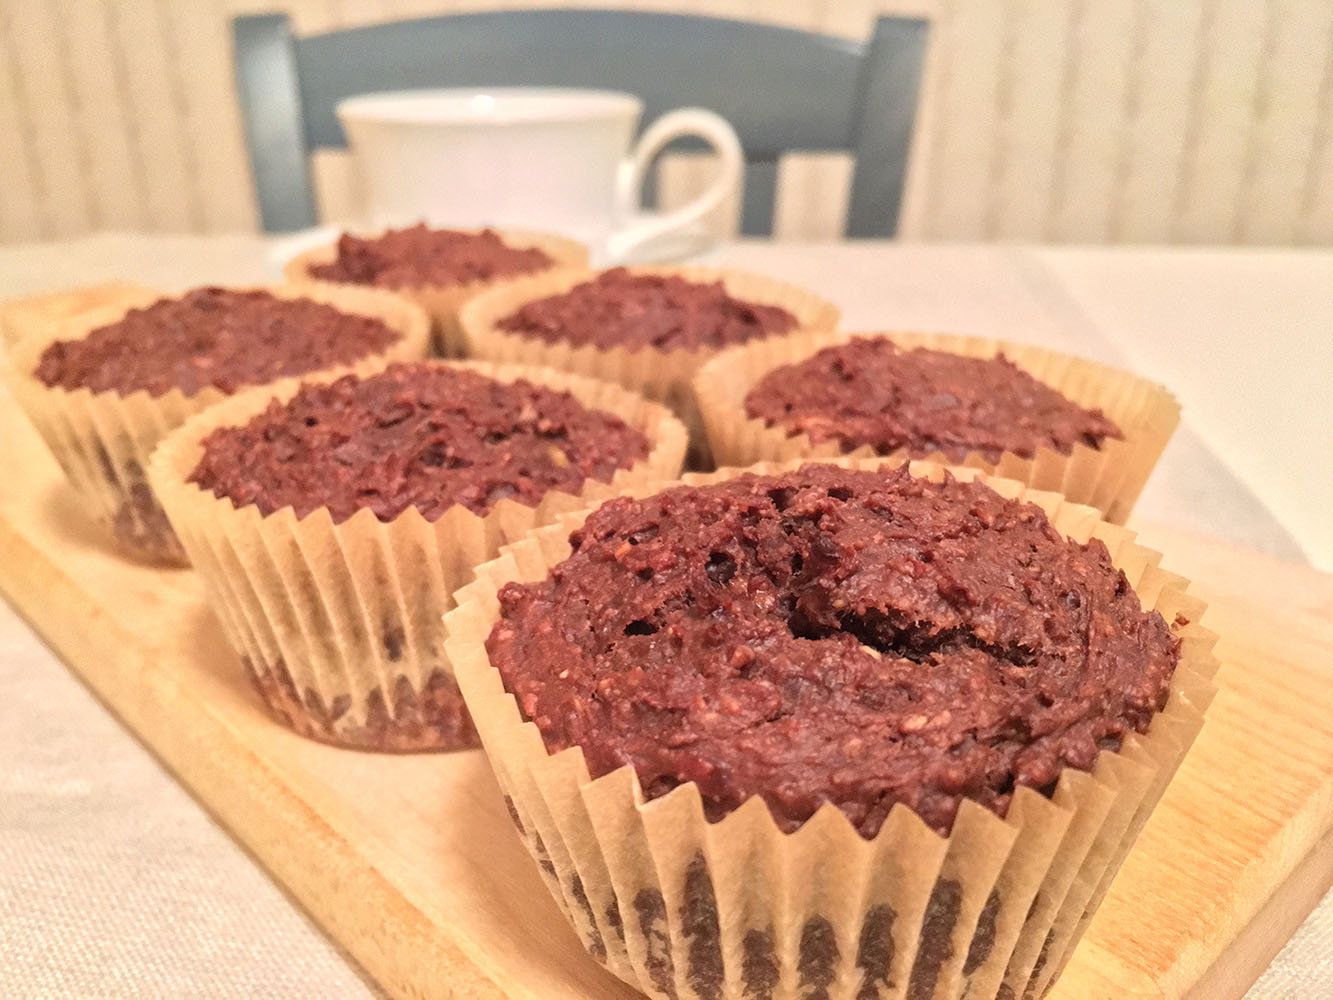 Chocolate Banana Blender Muffins with Coffee